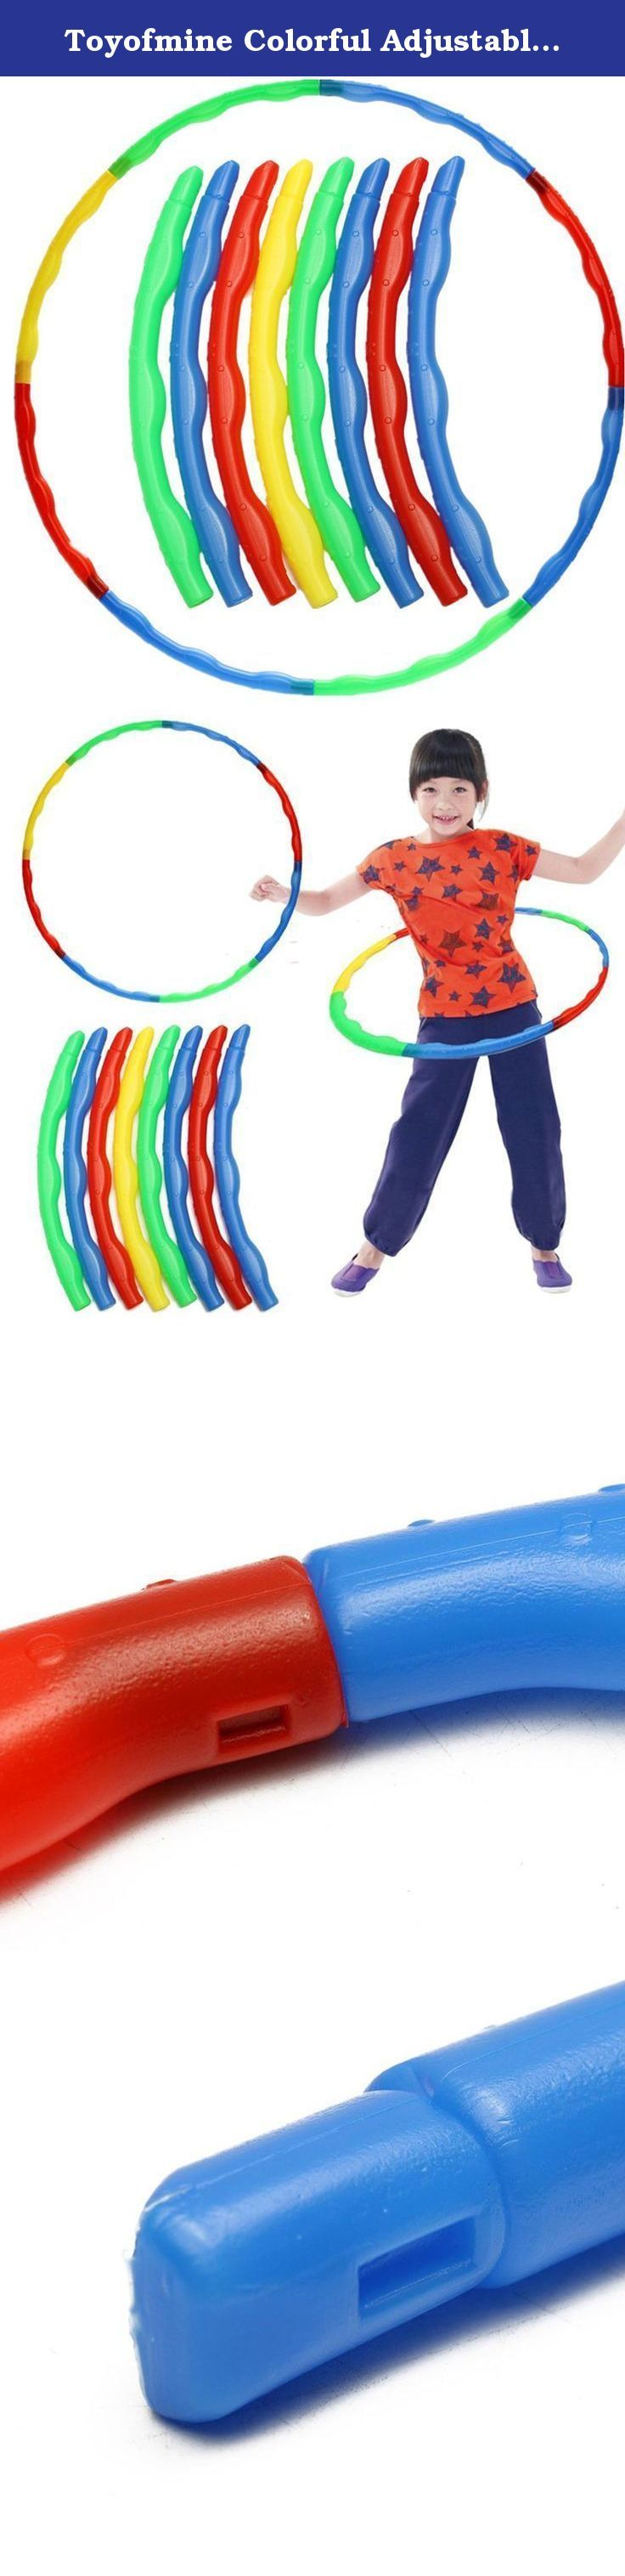 "Toyofmine Colorful Adjustable Hula Hoop Child Kids Portable Yoga Fitness Slot Sports Toys. ""Features: External Diameter: App 66 cm Inner Diameter: App 63.5 cm Suitable for :About ages 3 & up How to use : Made up of 8 colorful sections, each curved piece of this hoop slots together to form a full circle that's perfect for hula hooping. If the full circle is a little too big for smaller hoopers, remove a section or two to make a smaller hoop just for them. The ability to break down the…"